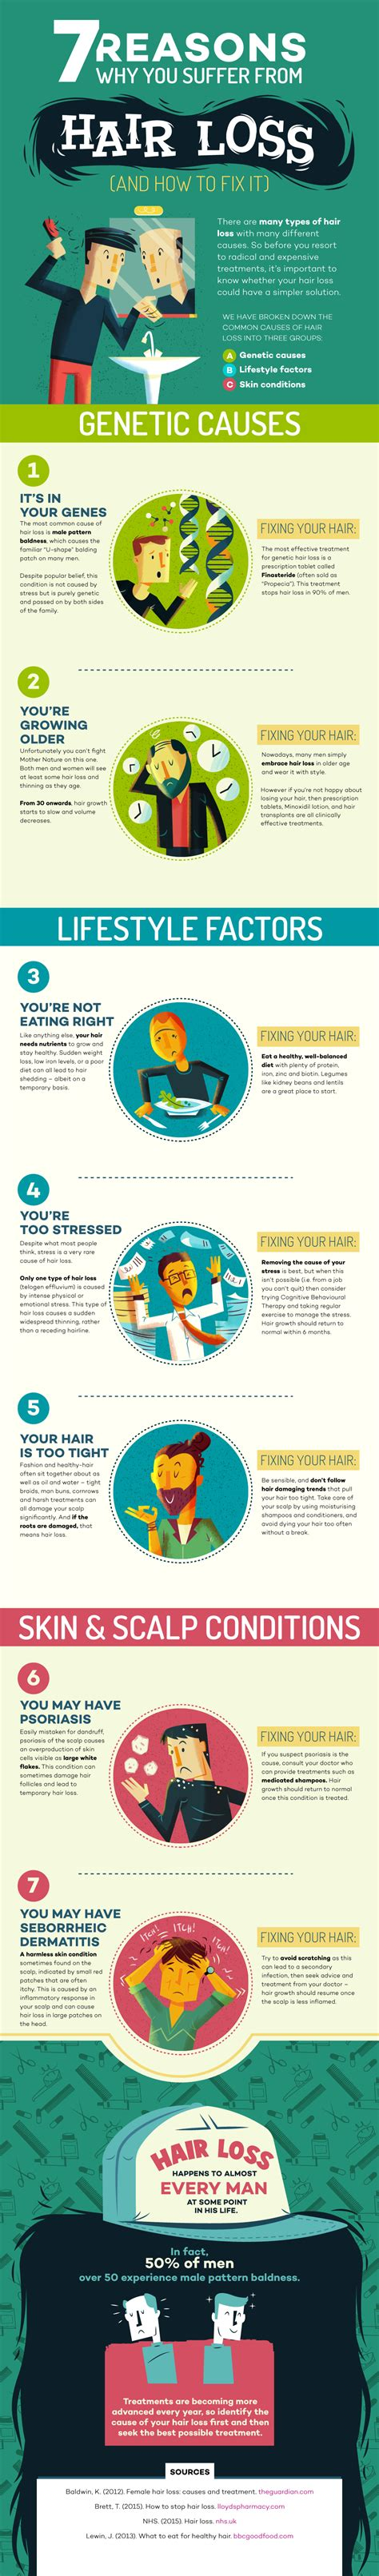 7 Reasons Bald Are by Infographic 7 Reasons Why You Suffer Hair Loss And How